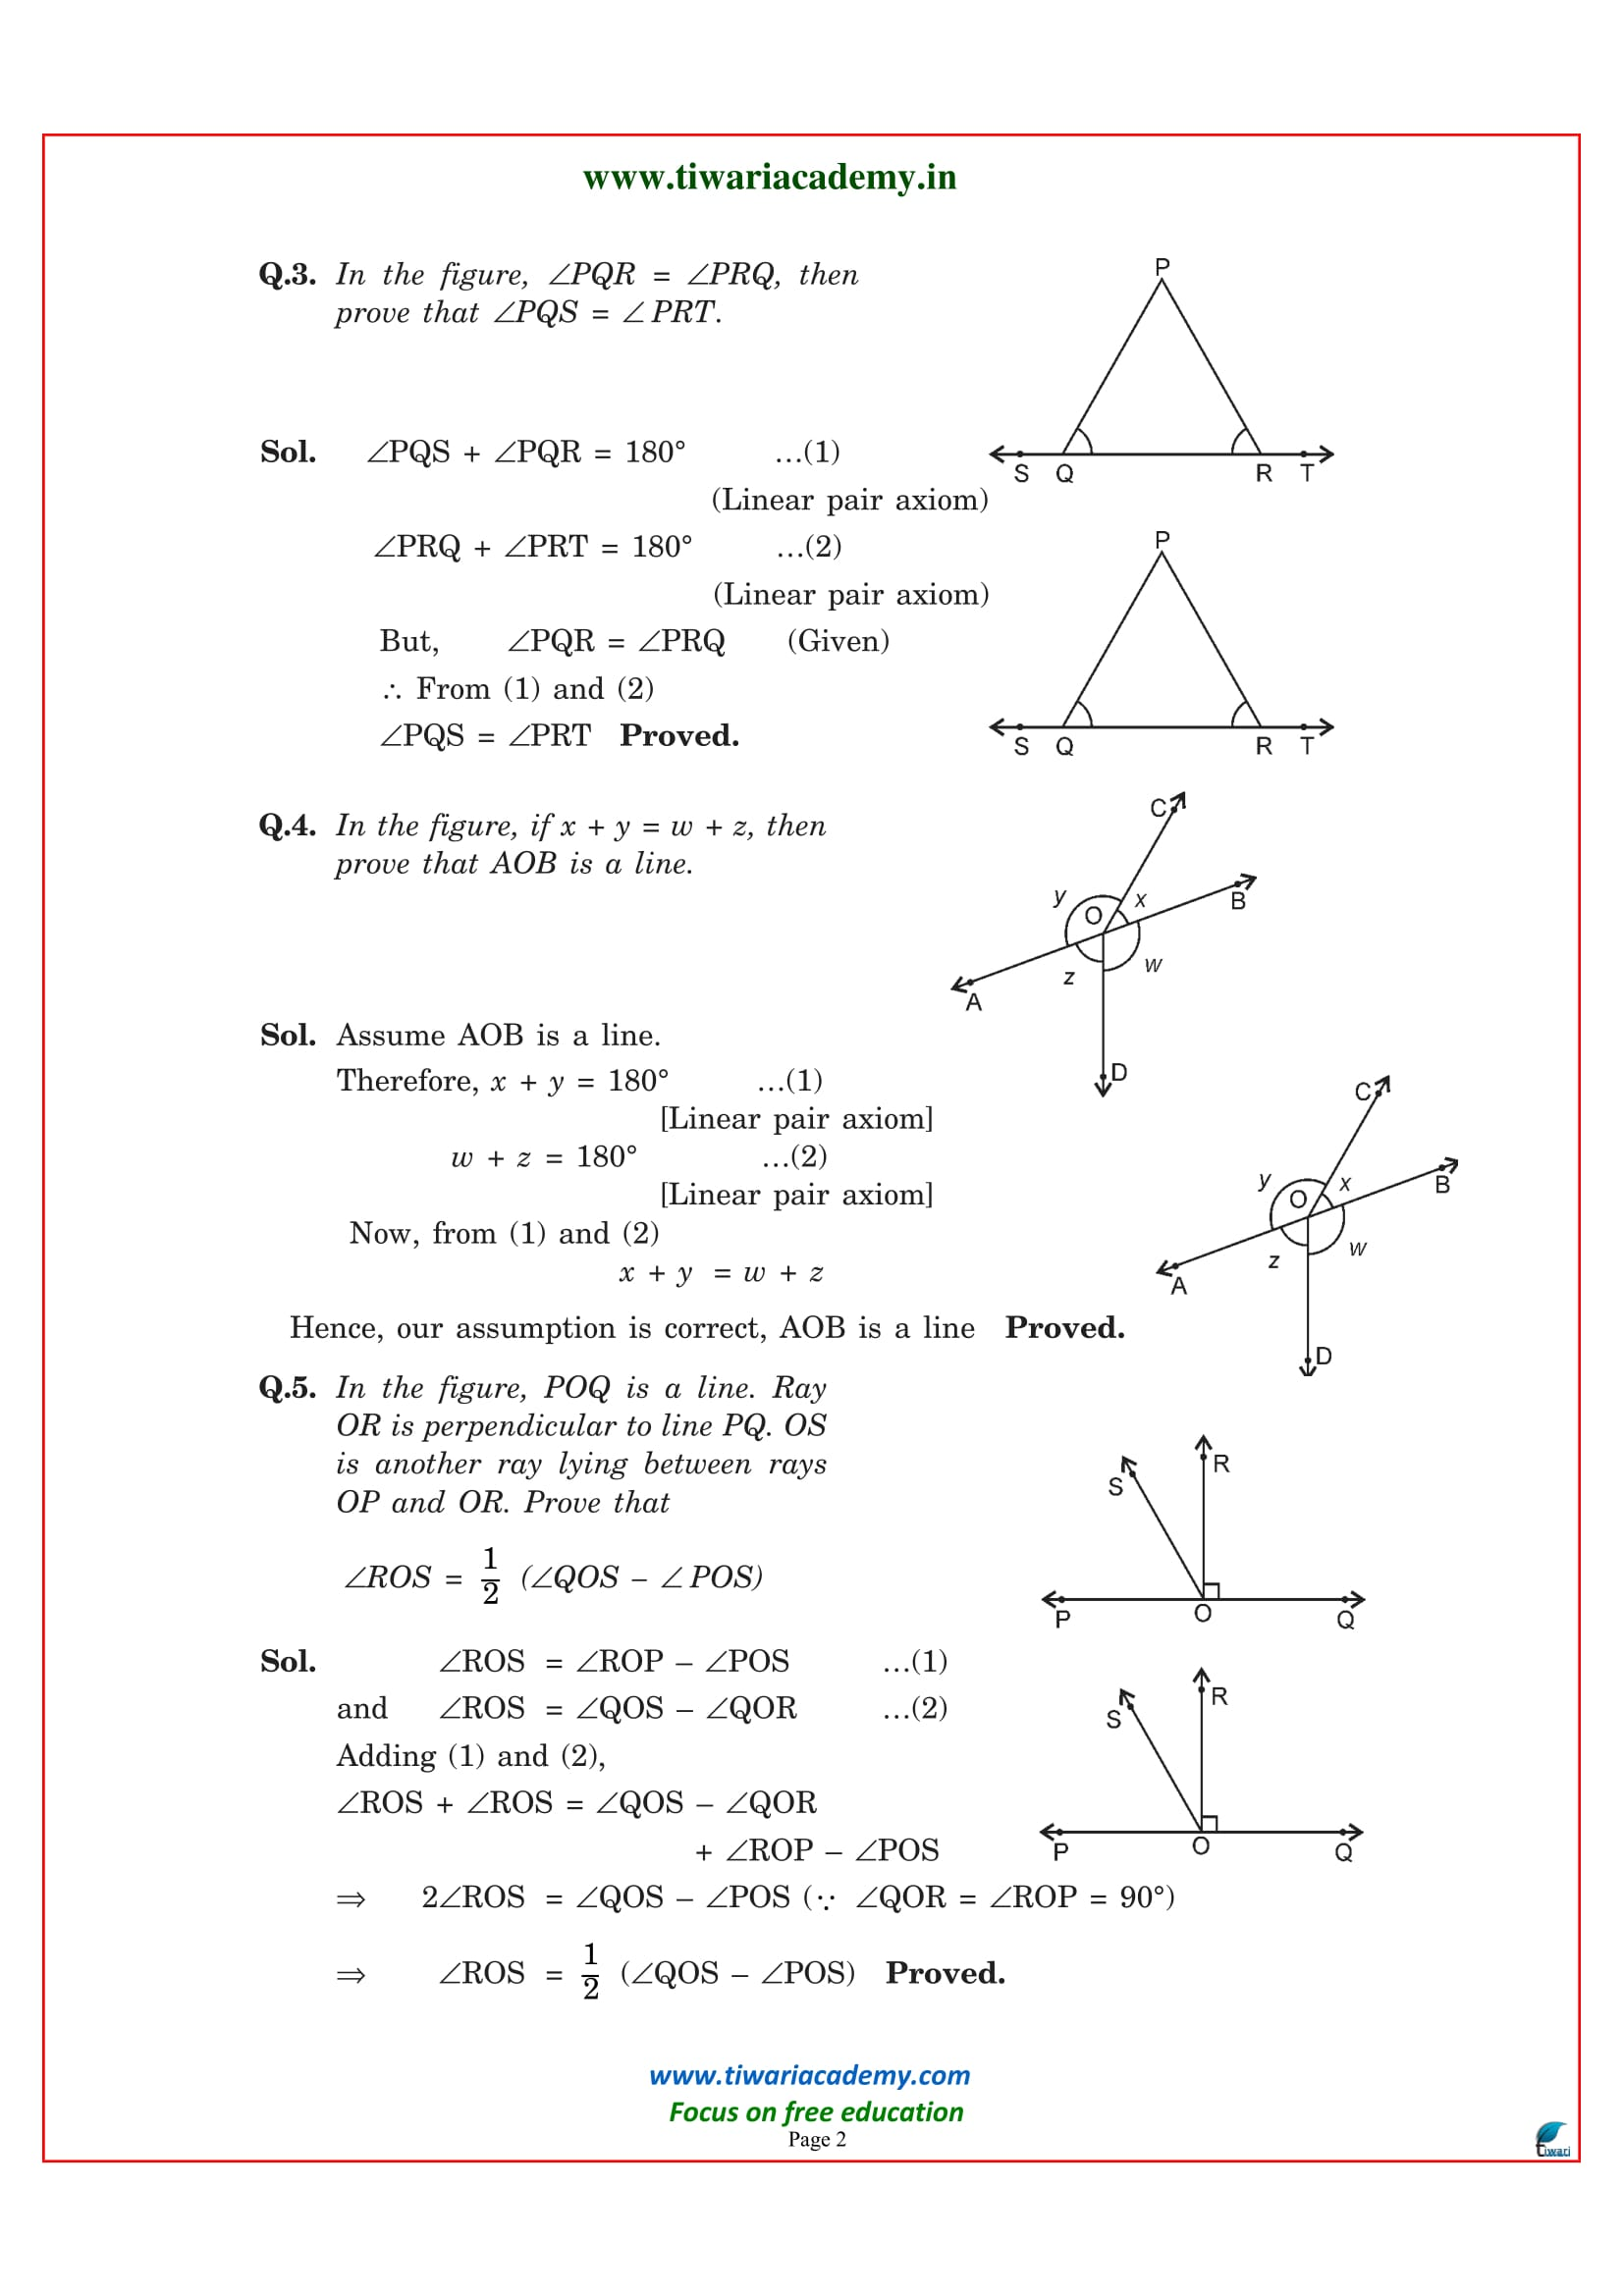 Class 9 maths exercise 6.1 solutions